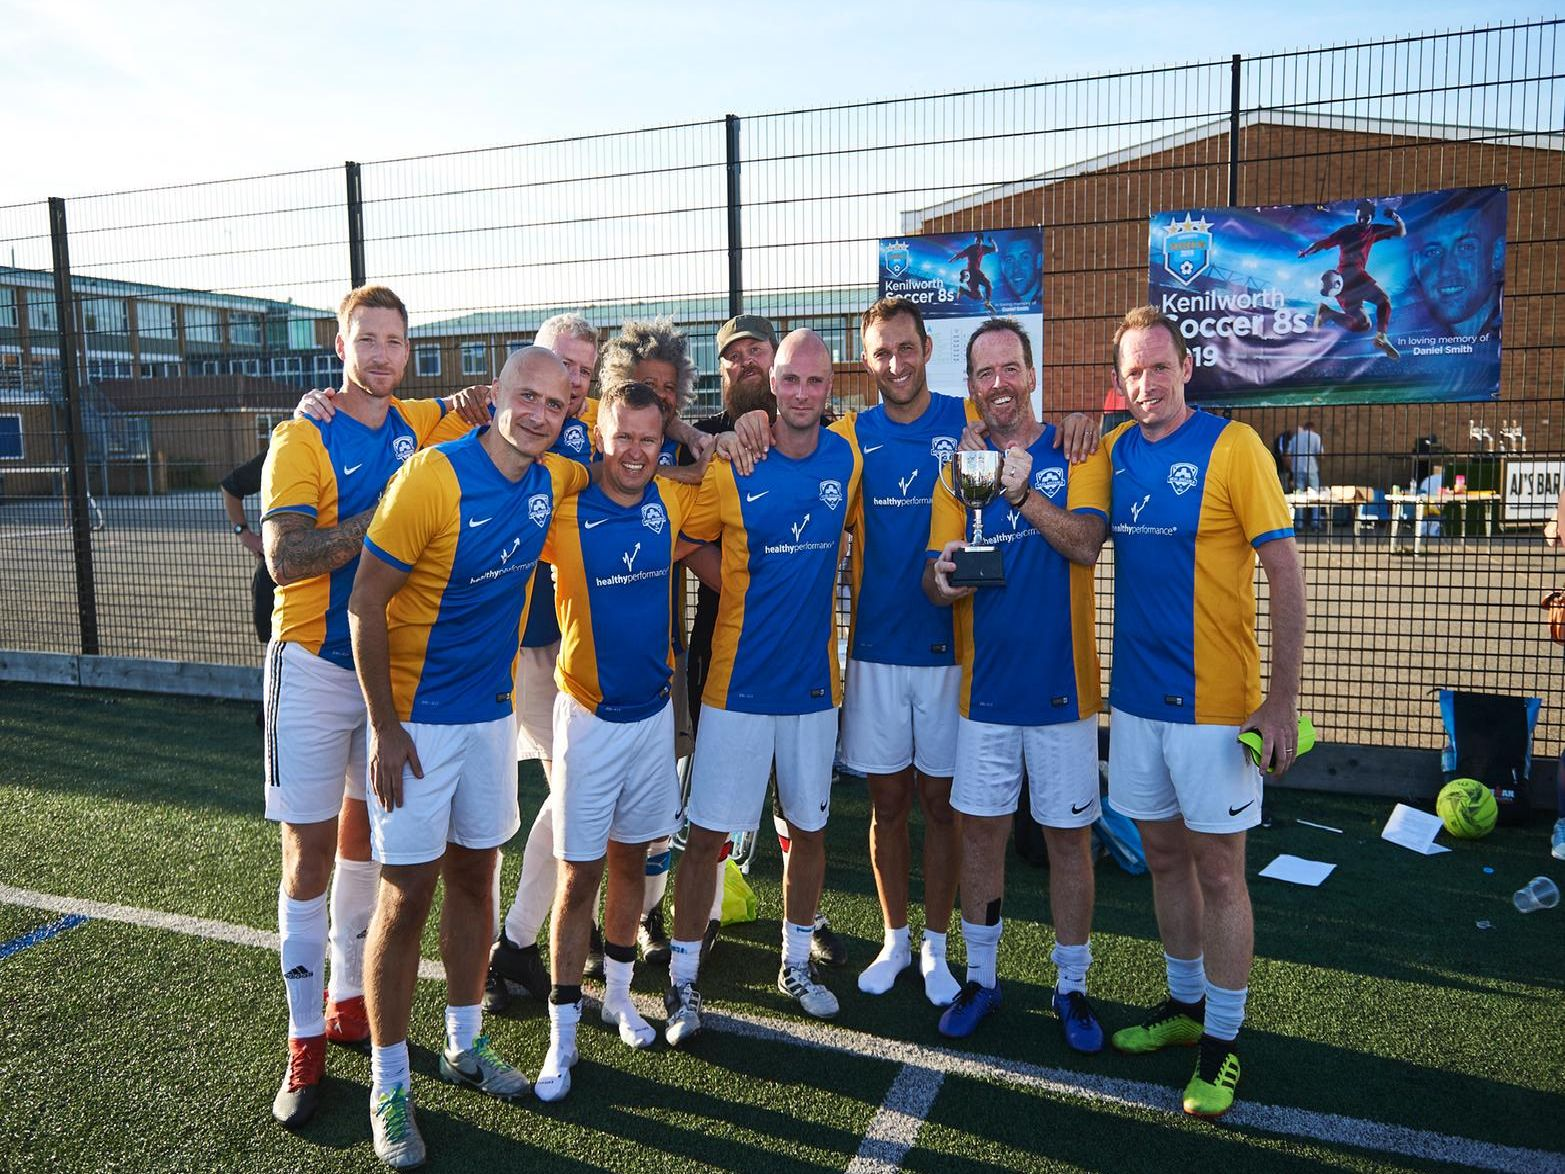 Real Sociable - the winning team at the Soccer 8s charity football tournament '(photo by Ben Duffy)